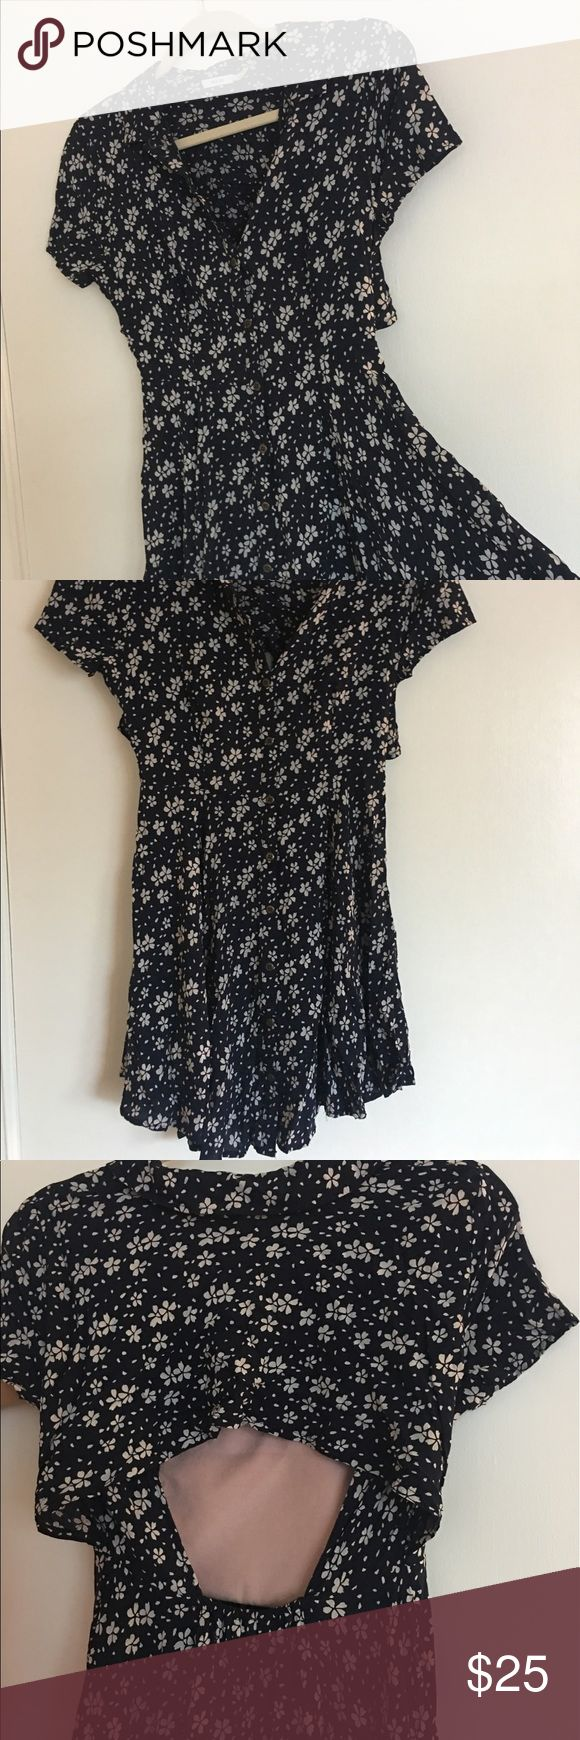 Urban outfitters little button down dress Urban outfitters flowy button down, open back dress. Like new condition, never worn. Ordered online and didn't fit. Waited too long to return. Urban Outfitters Dresses Backless